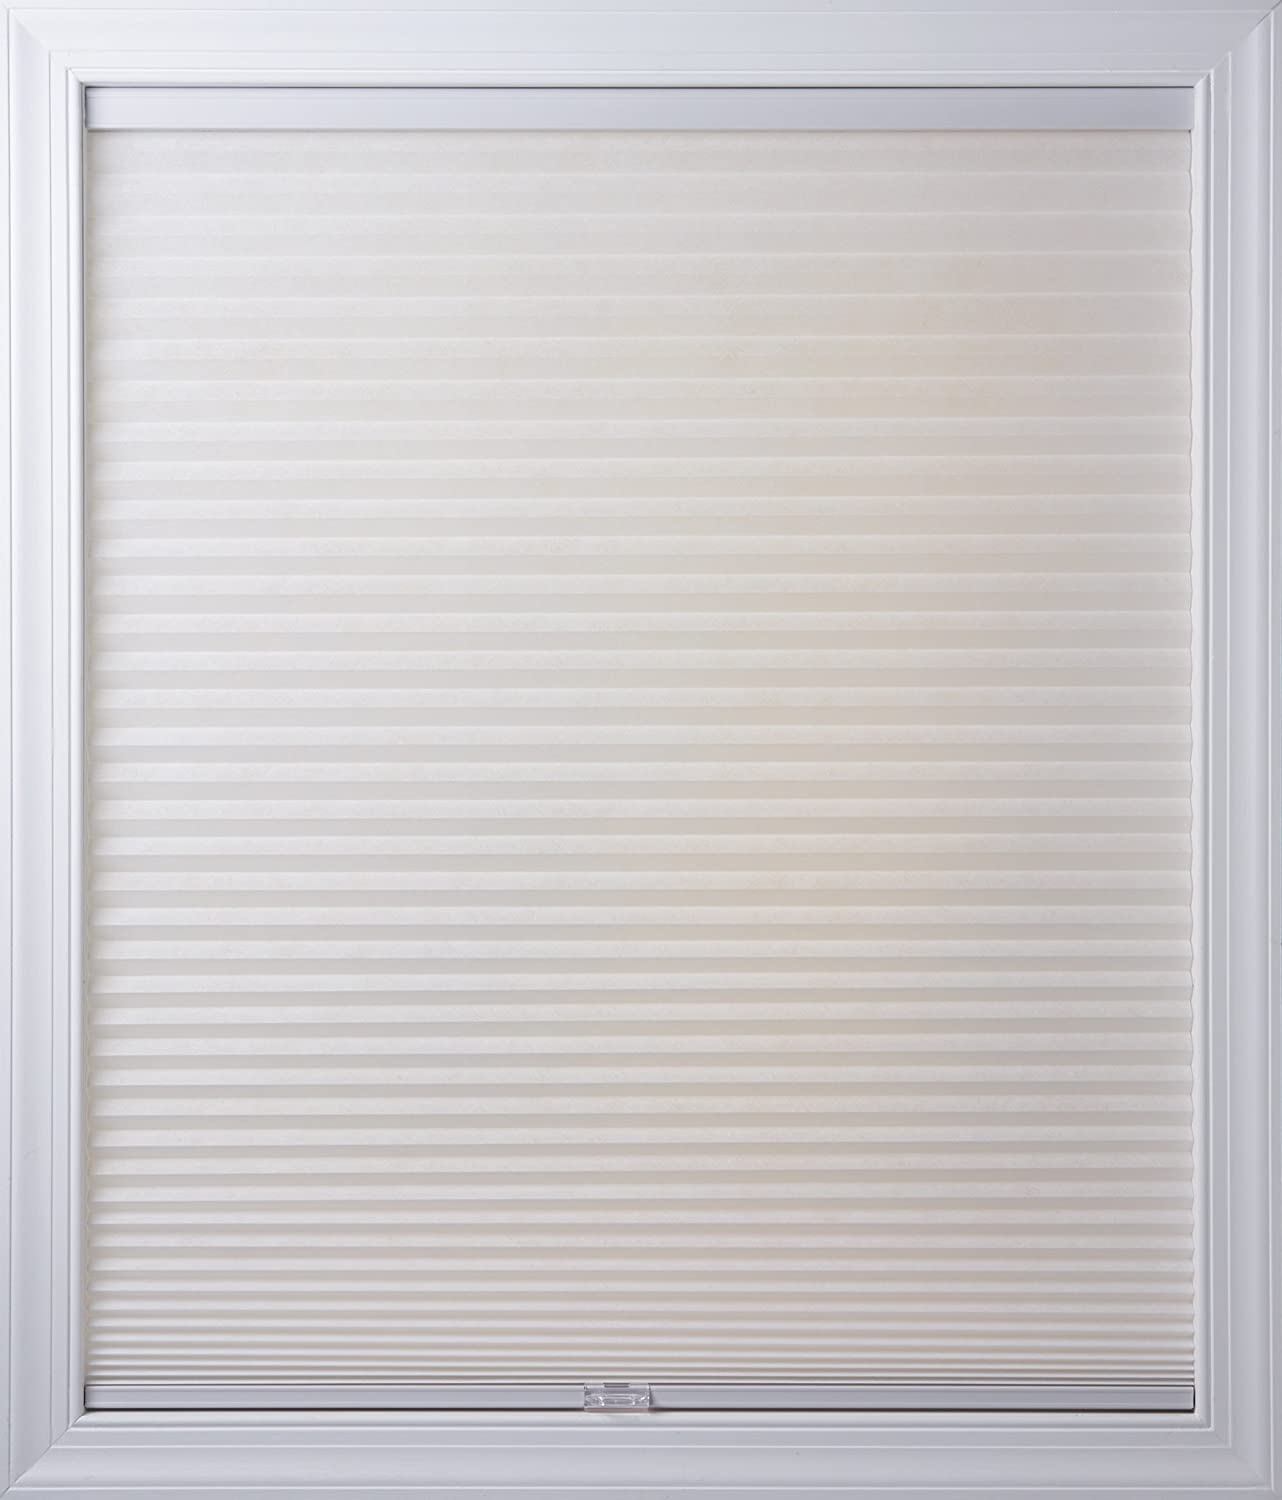 Bombing new work New Age Blinds Light Filtering Max 69% OFF Cordless Inside Mount Frame Cellu